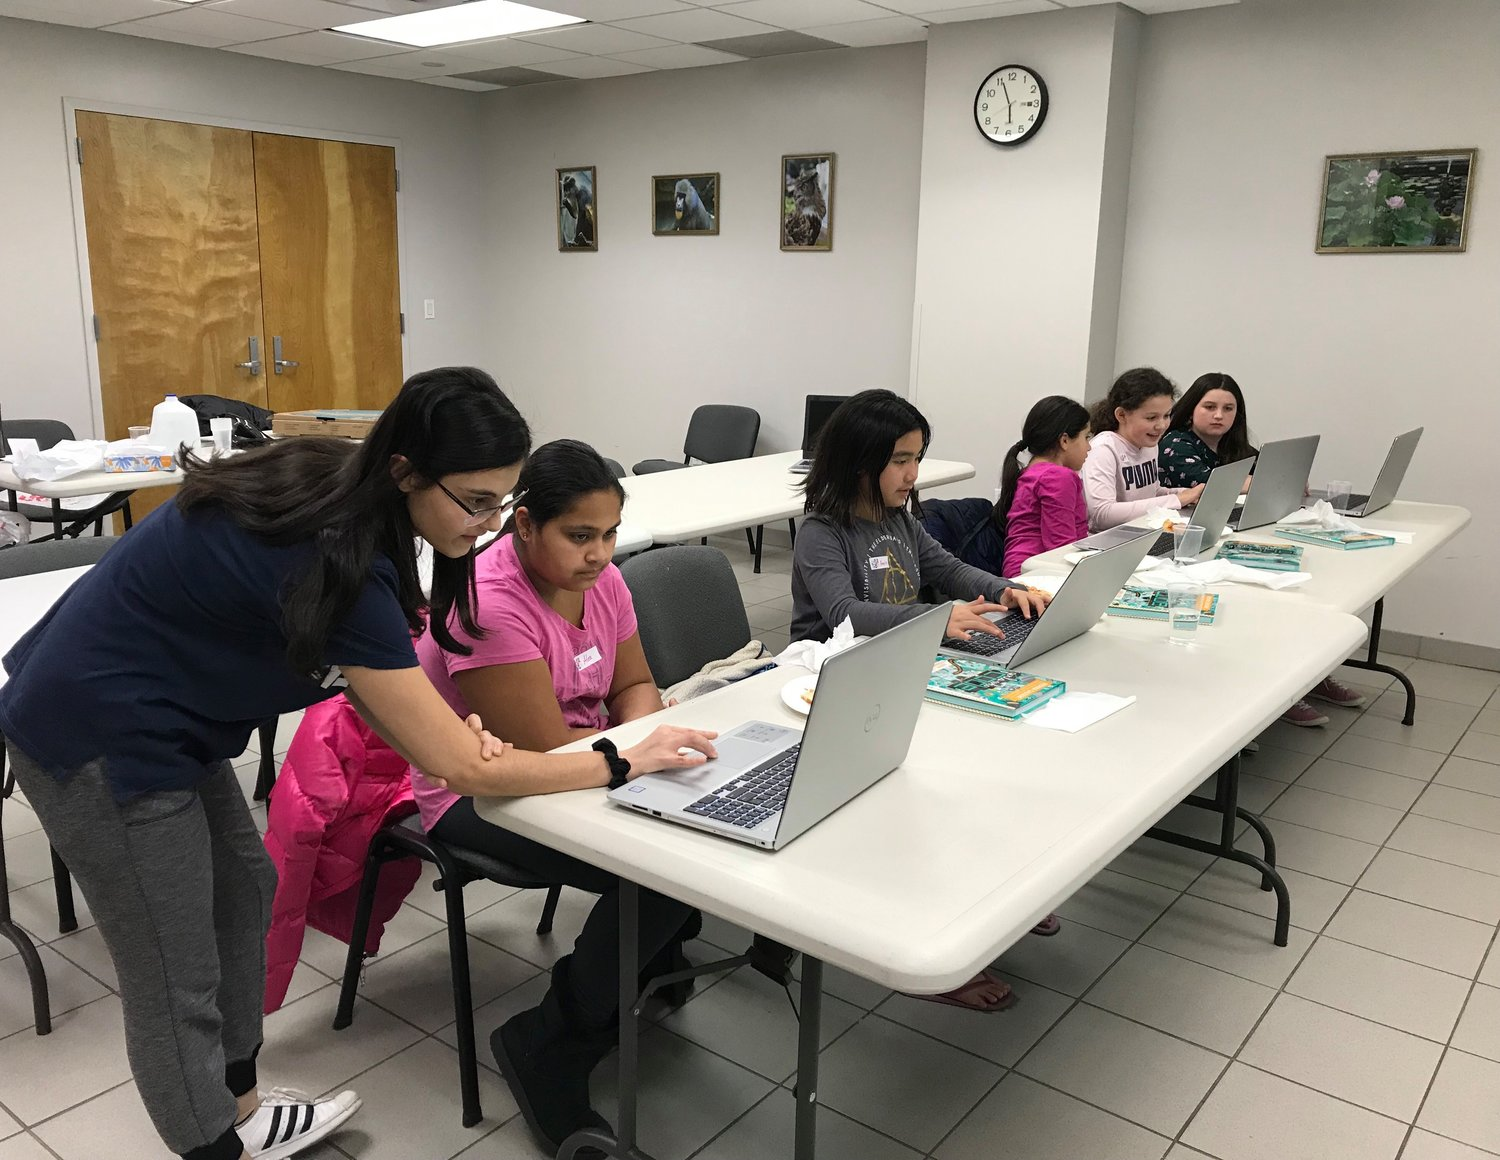 Pocress held coding lessons for girls at Oceanside Library as part of her Gold Award project.